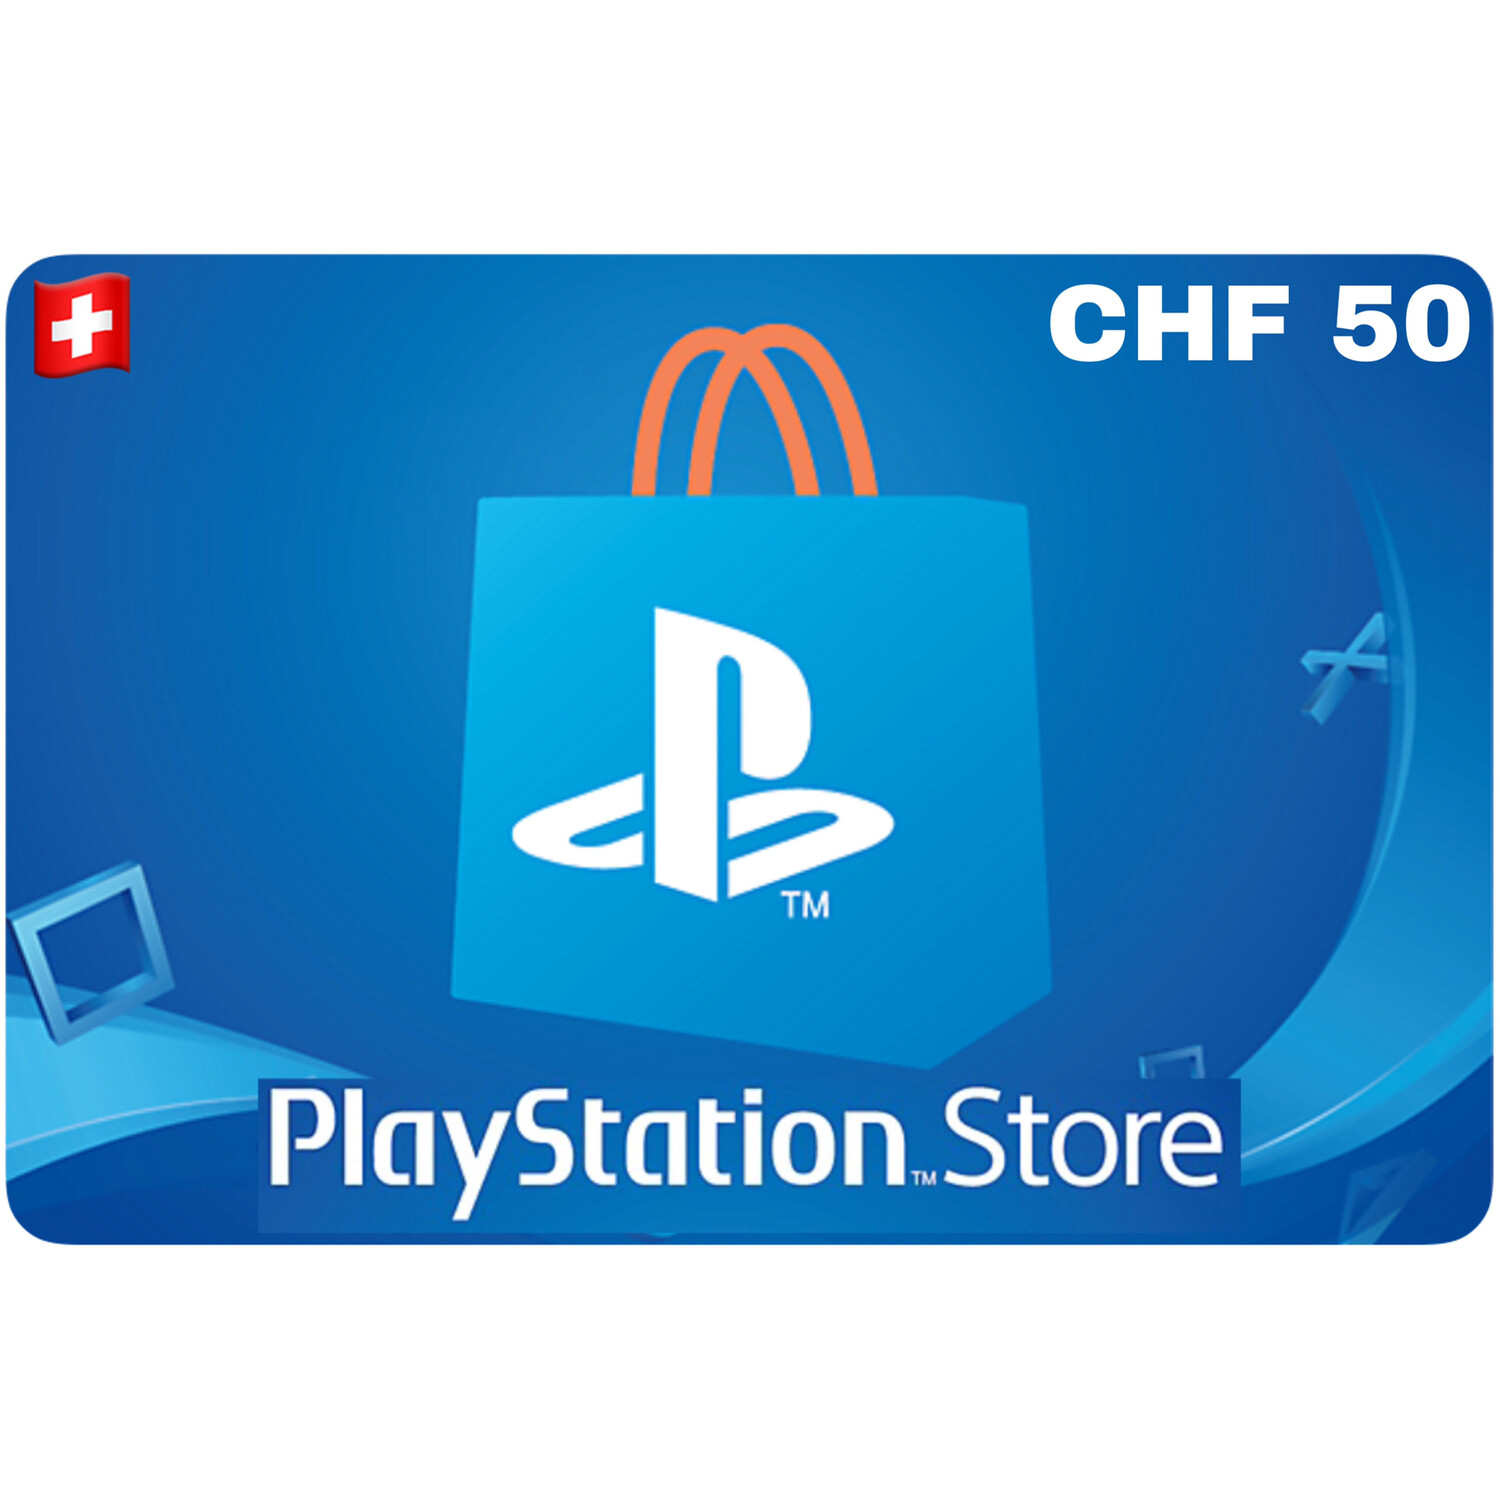 Playstation Store Gift Card Switzerland CHF 50